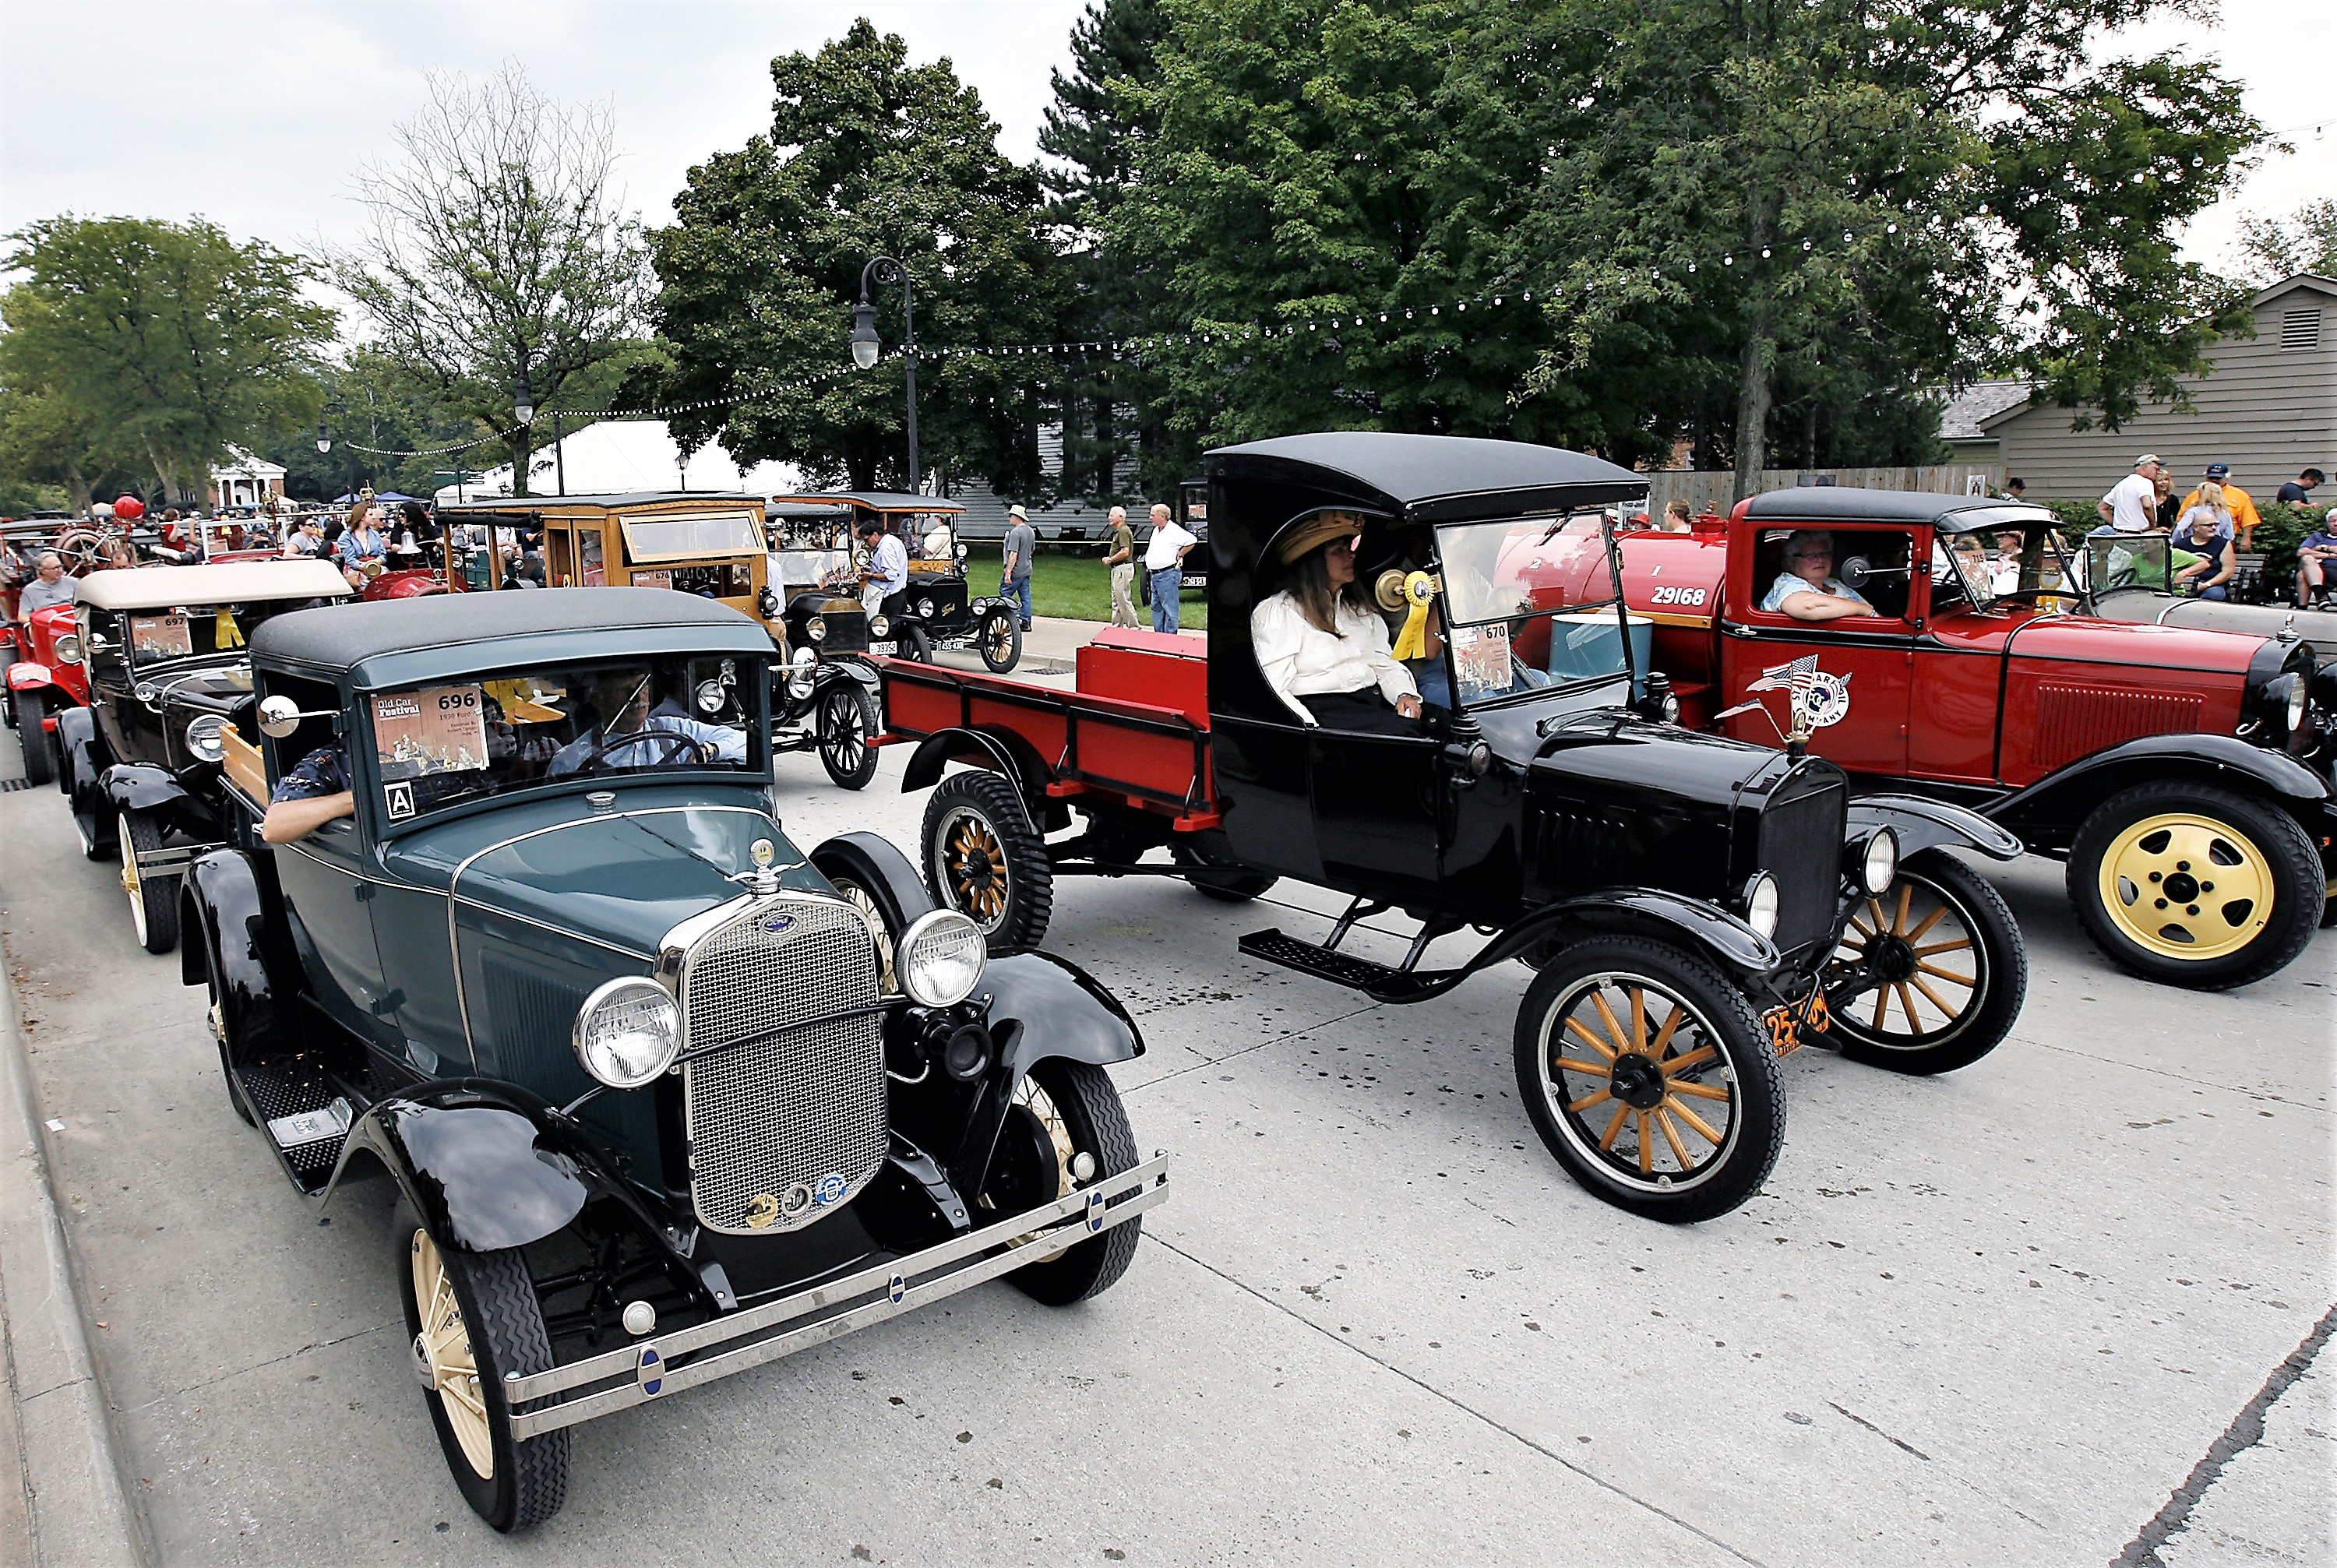 Old Car Festival Splendor In France And New Upcoming Events - Classic car events